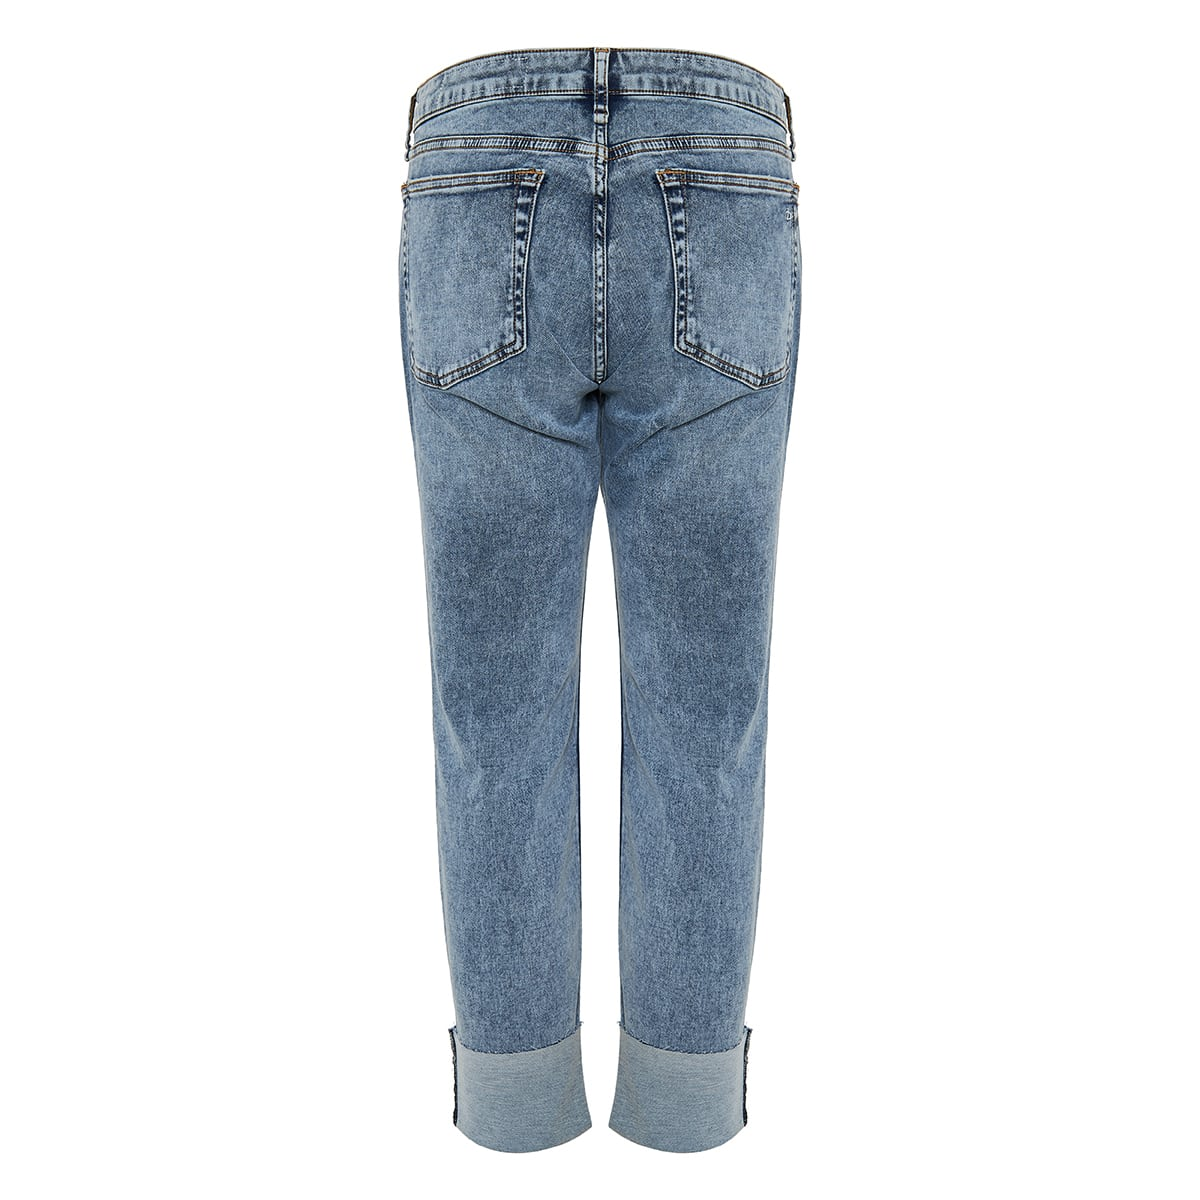 Dre low-rise cropped jeans